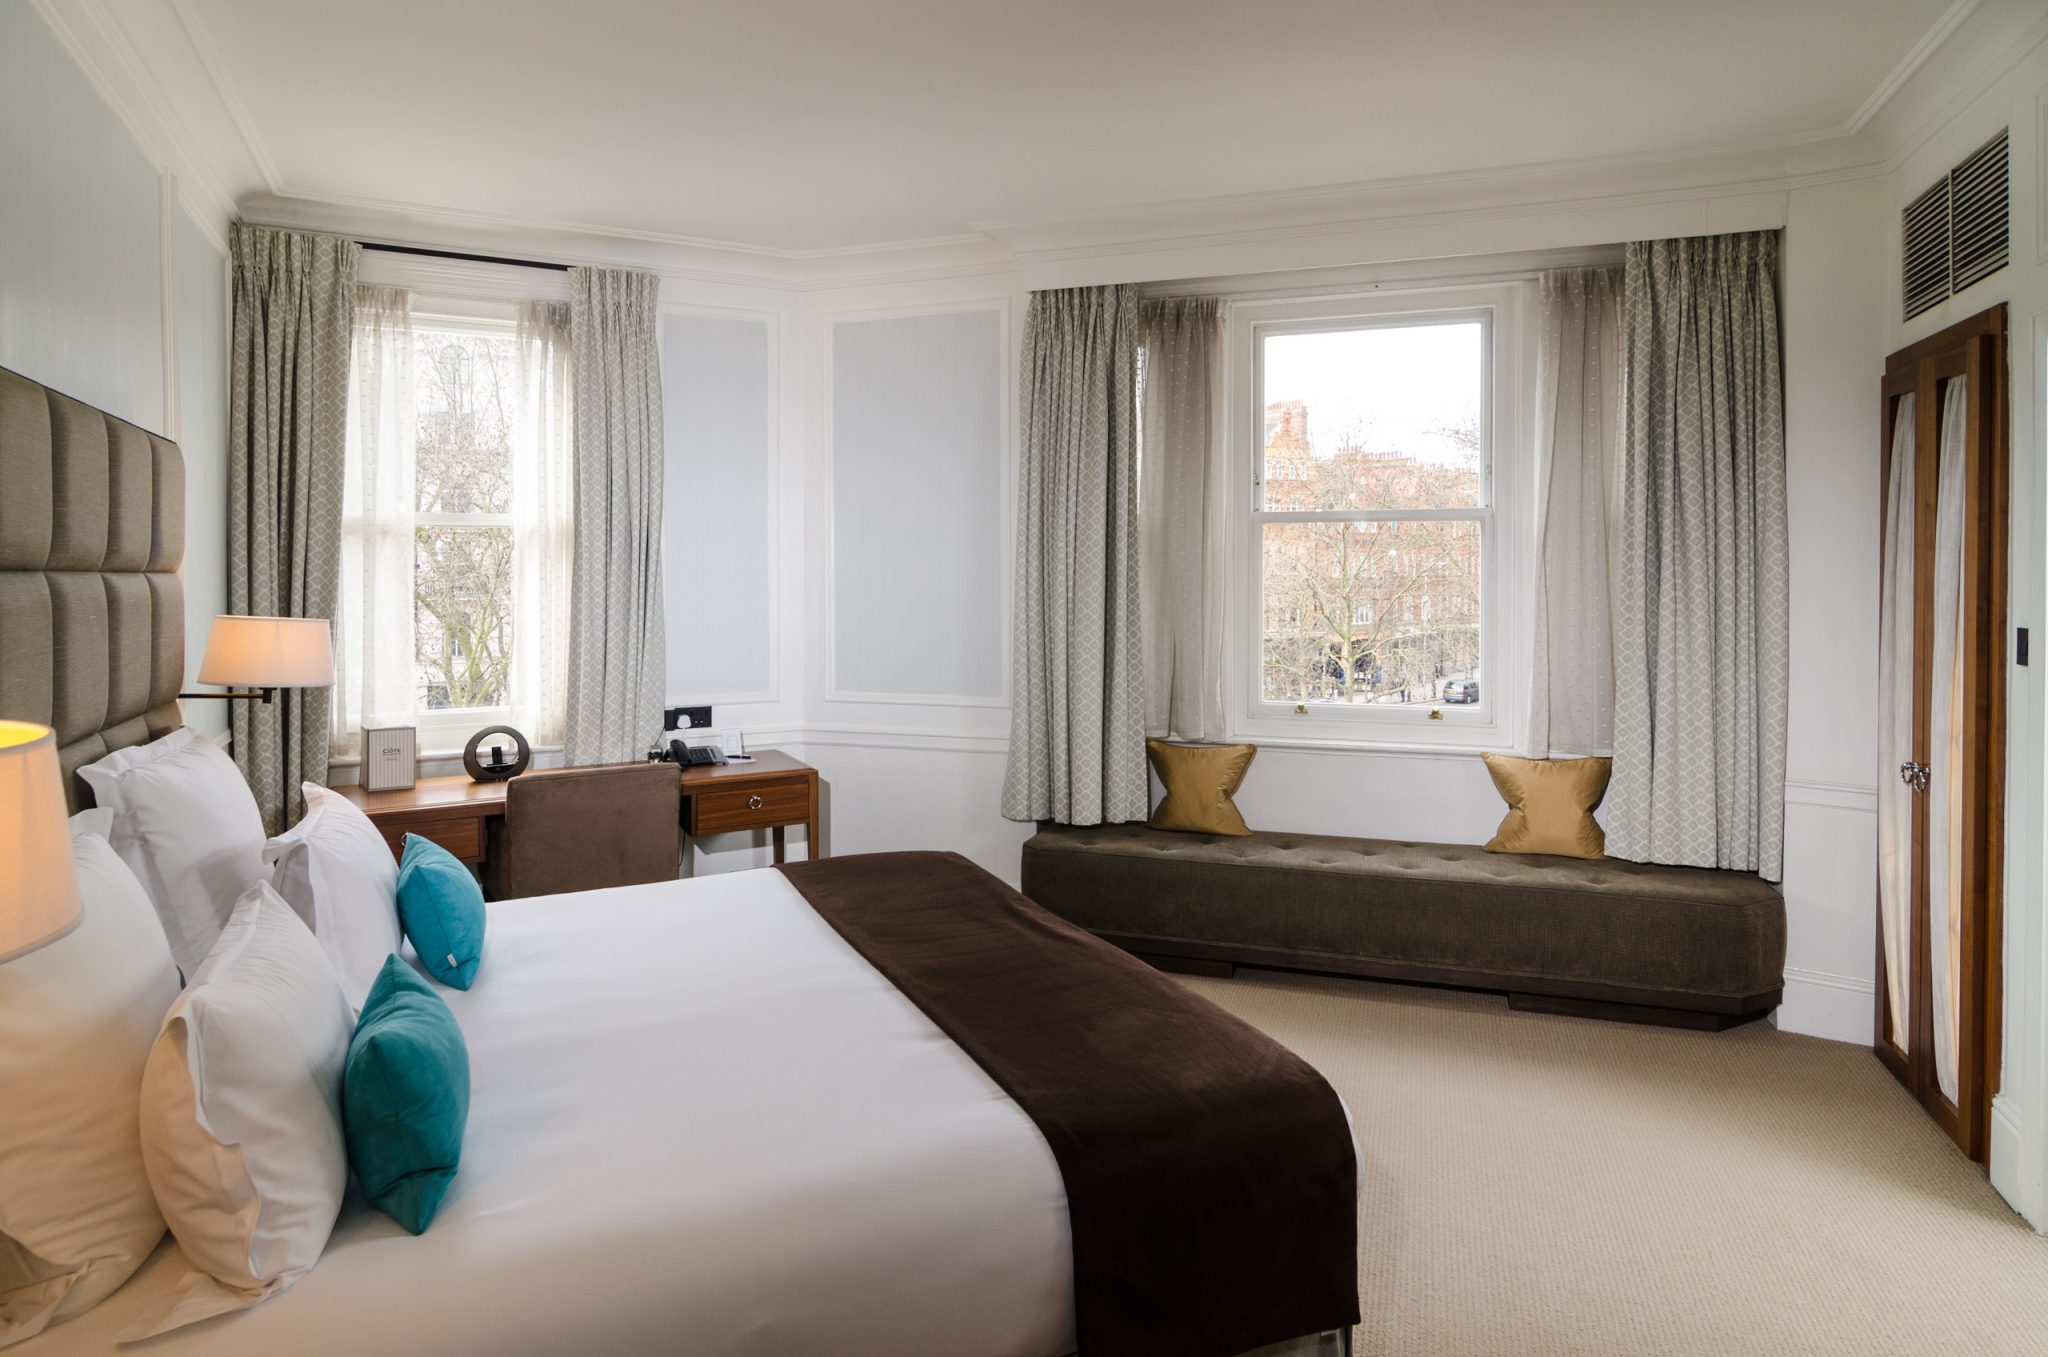 This is the Club Room I always request, for my sojourns at the Sloane Square Hotel. Photo courtesy Sloane Square Hotel.